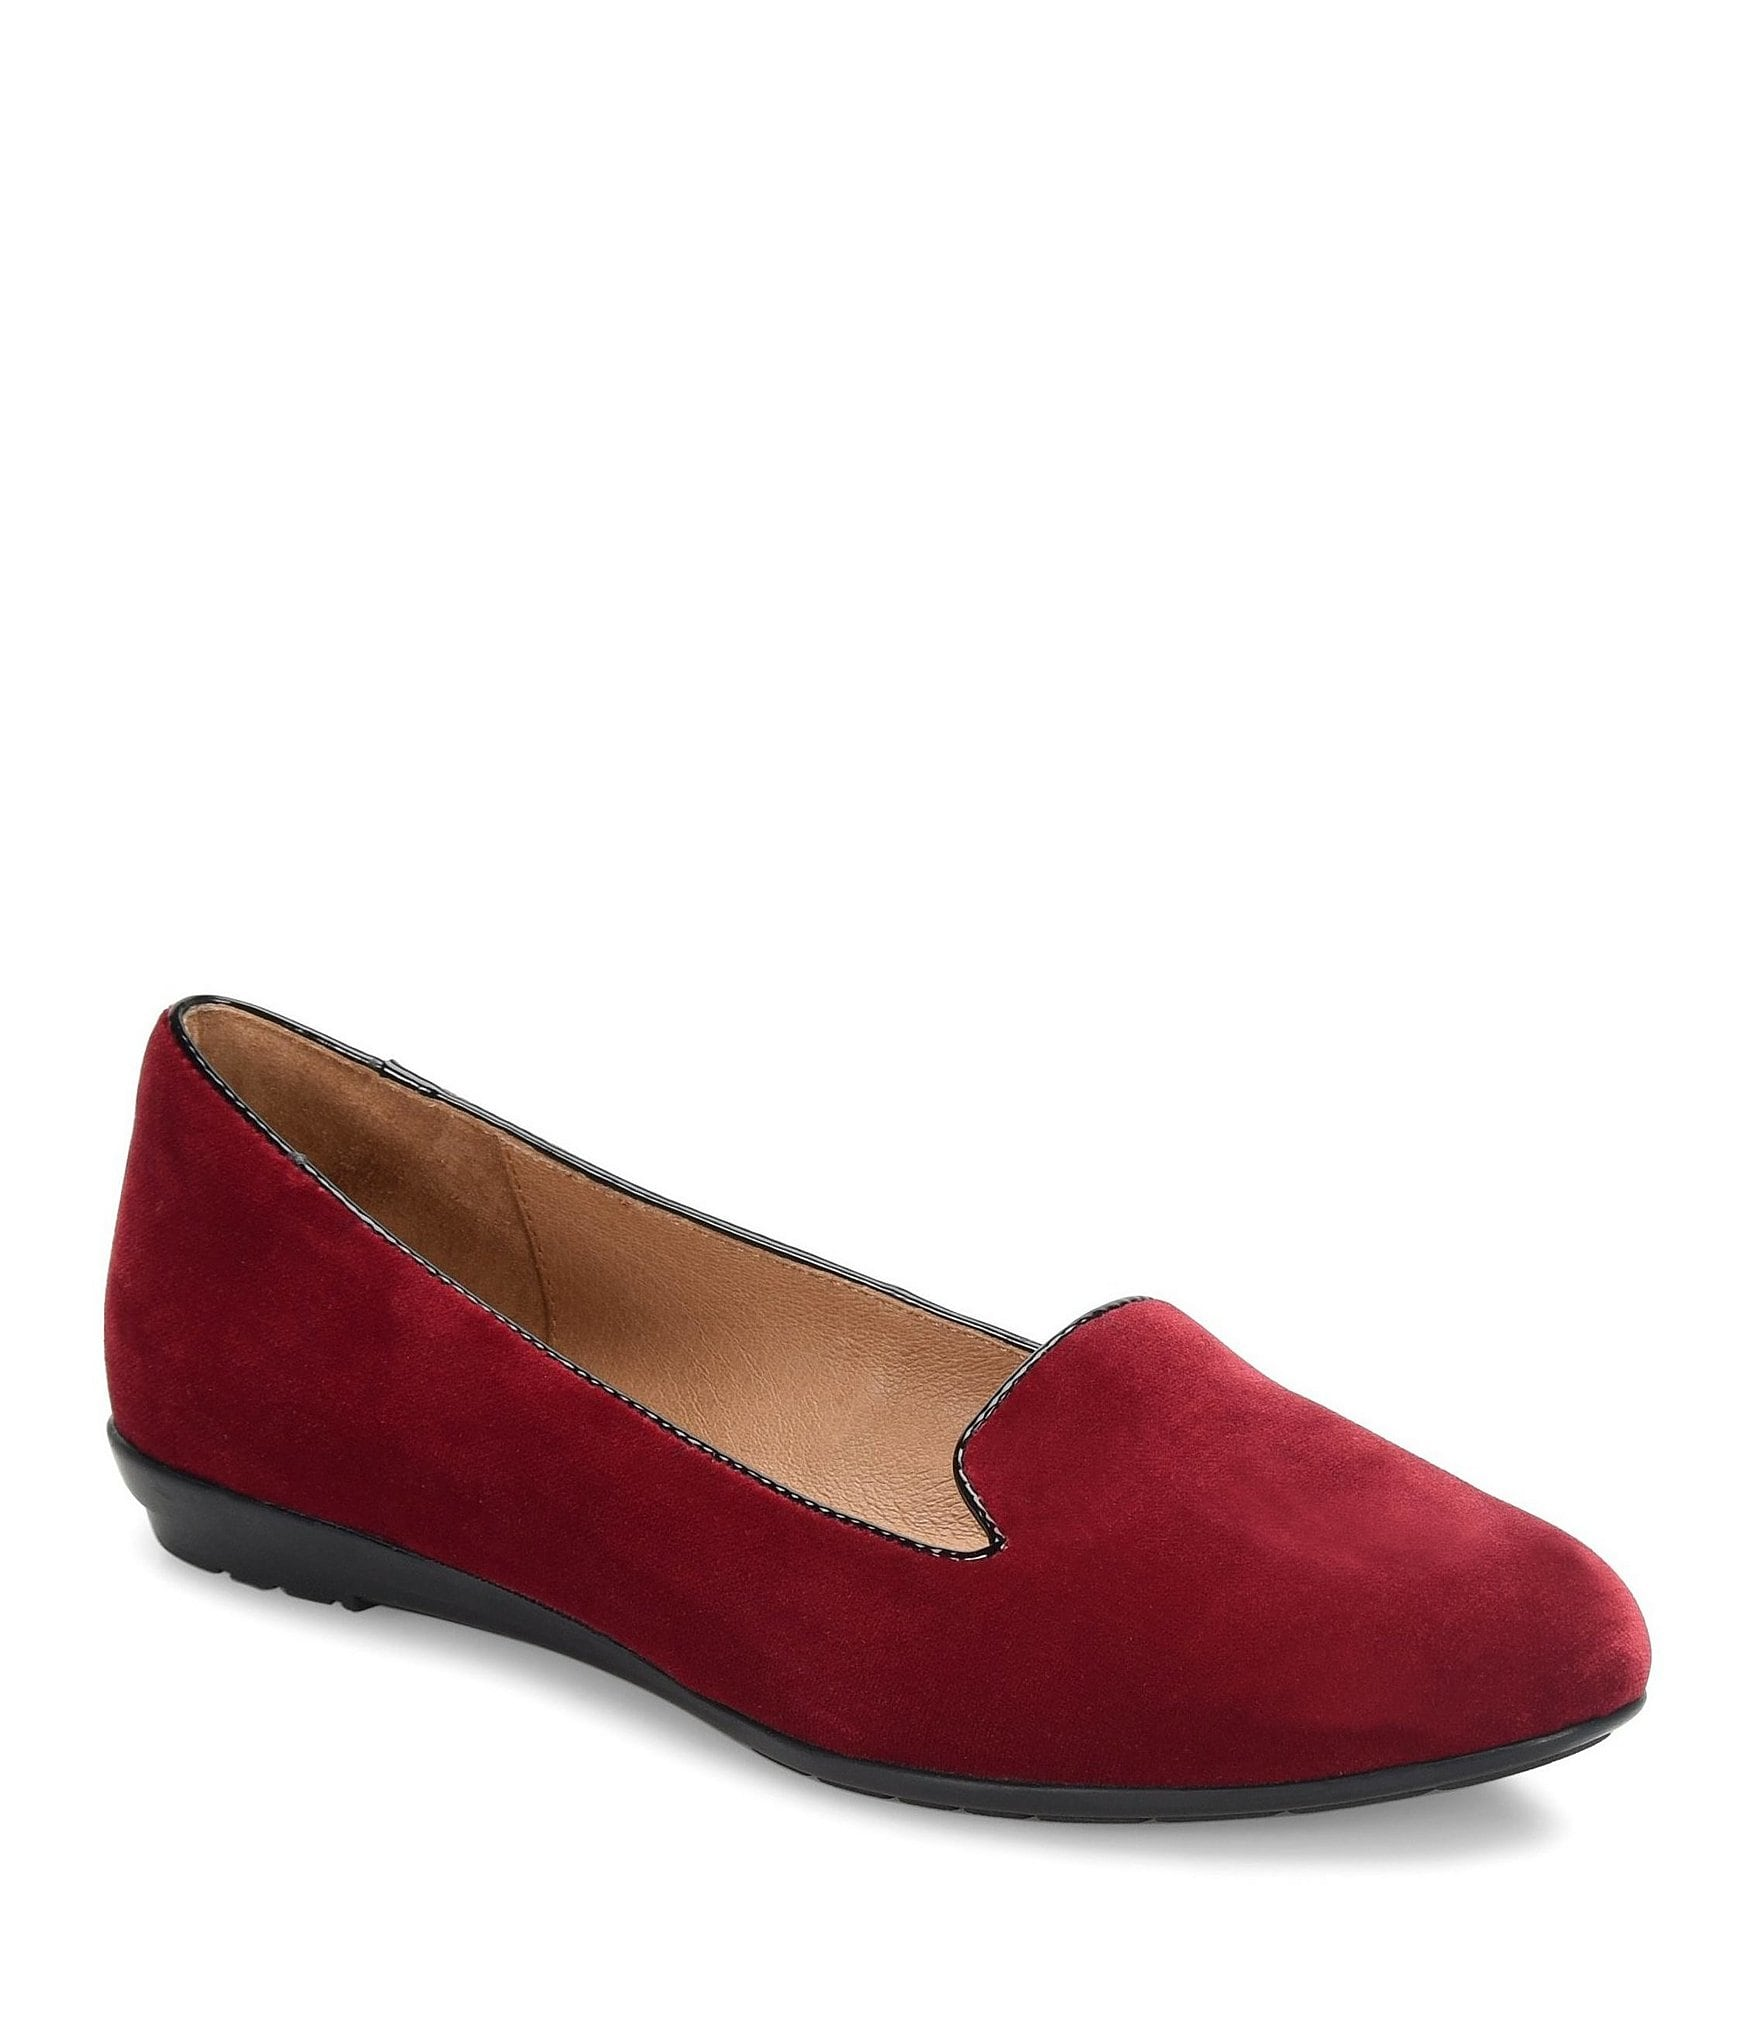 Flats Shoes In Extended Sizes